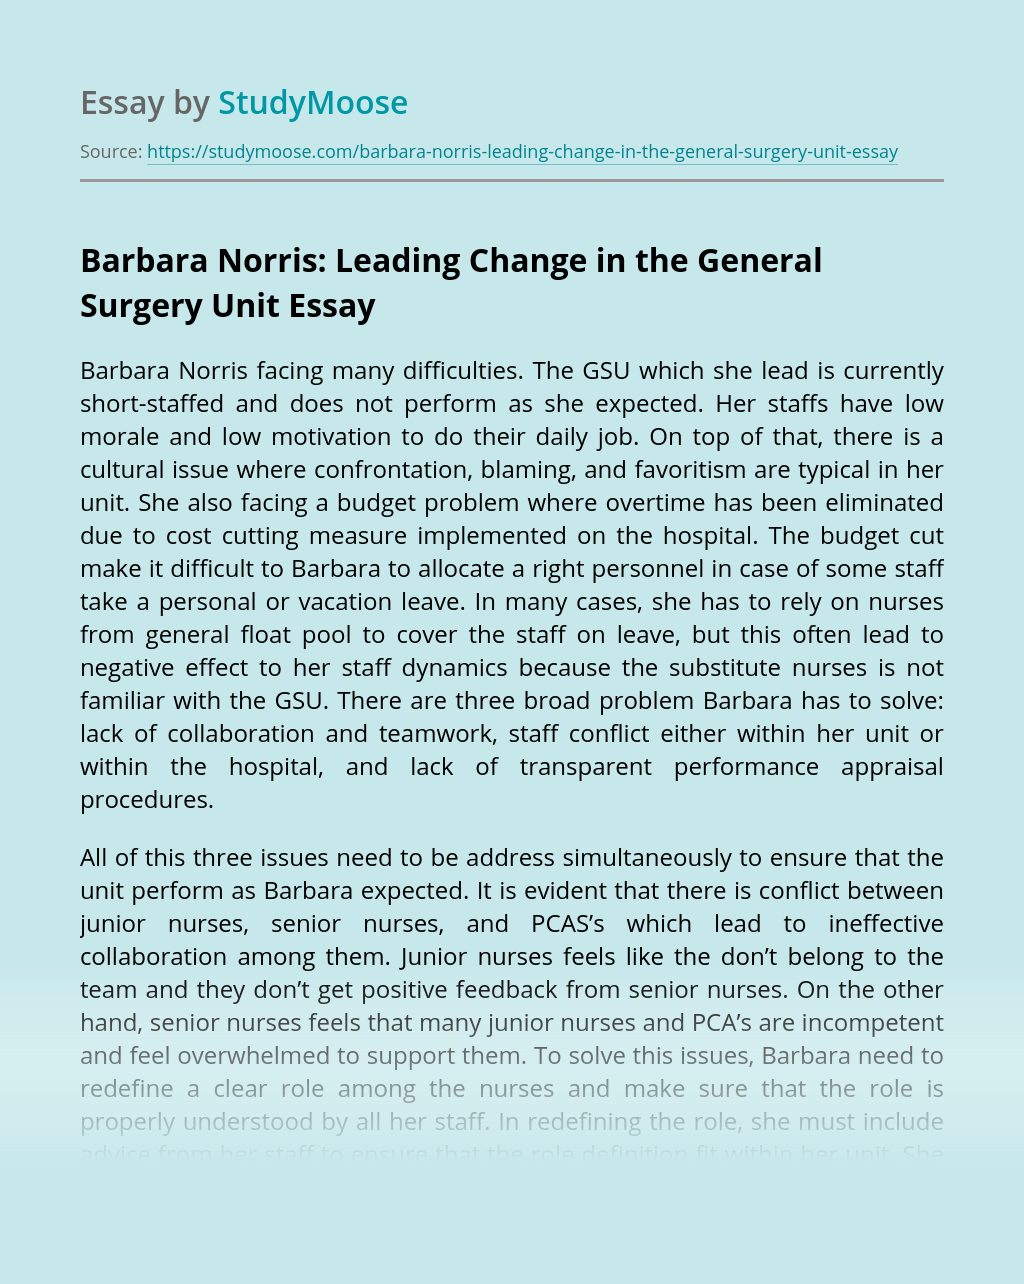 Barbara Norris: Leading Change in the General Surgery Unit